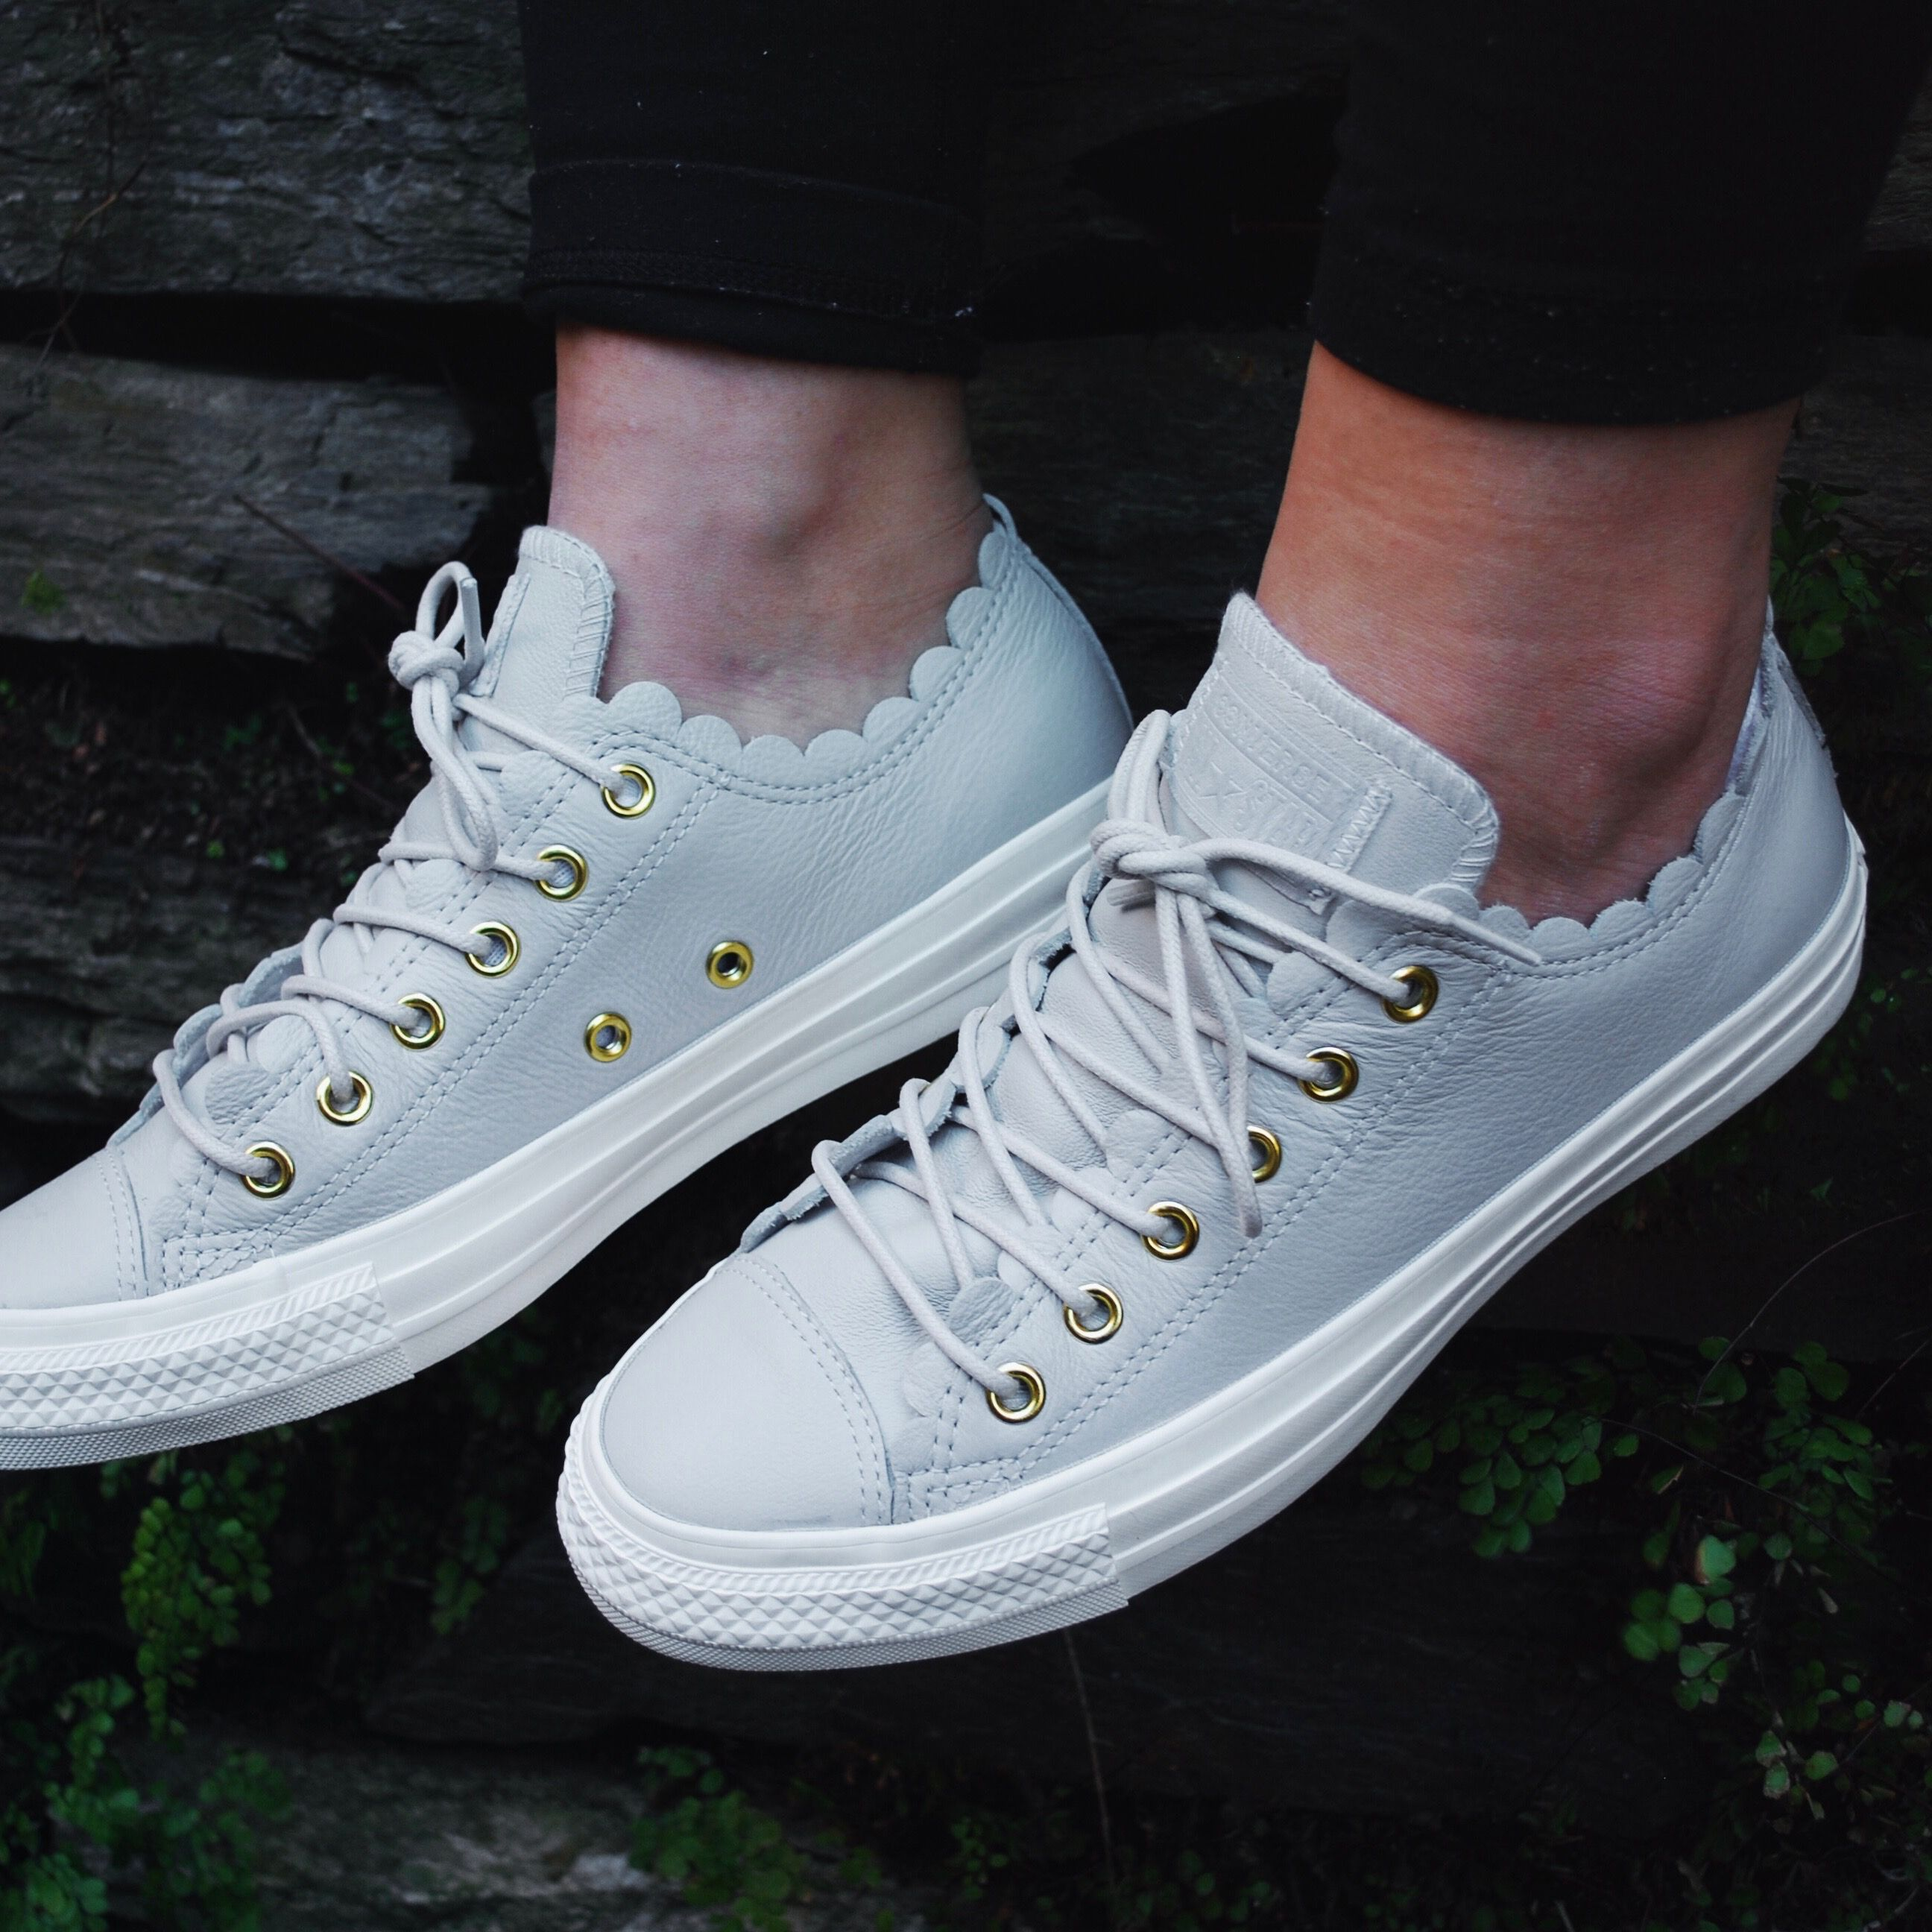 There's nothing mousy about the Converse Women's Chuck